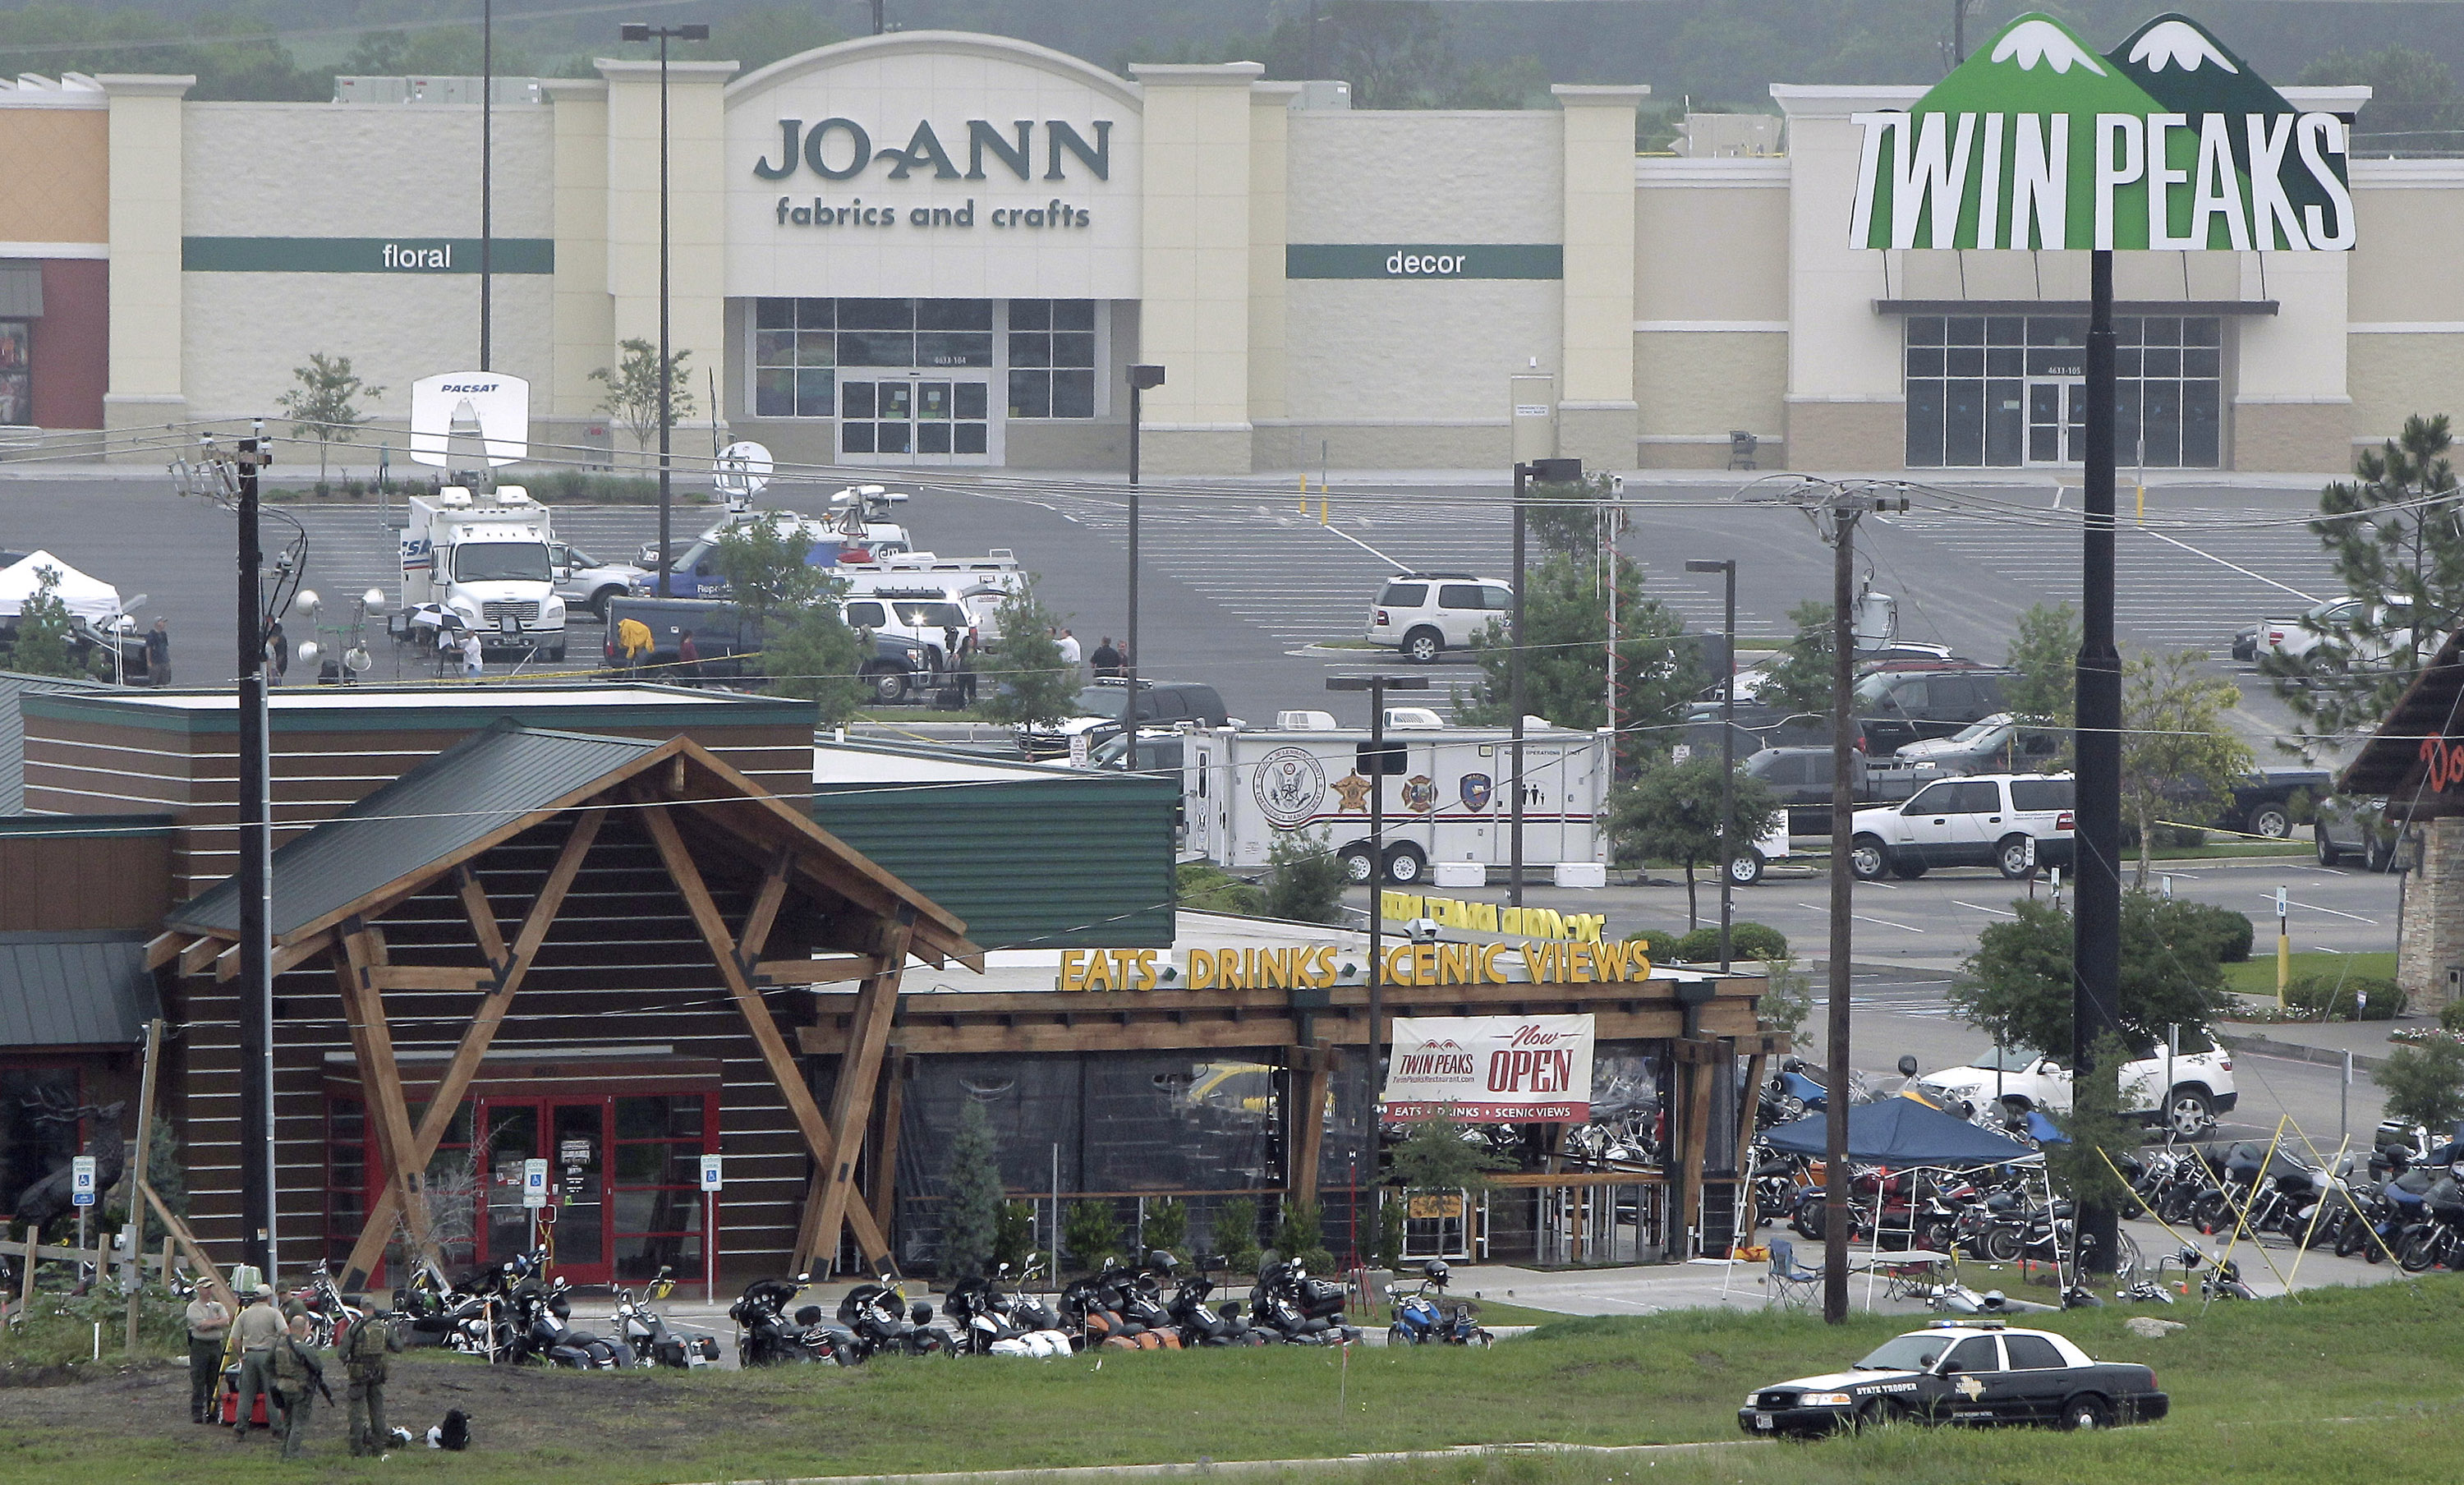 Twin Peaks Files Suit Against Waco Operators; Olive Garden's Food Truck Hits the Road